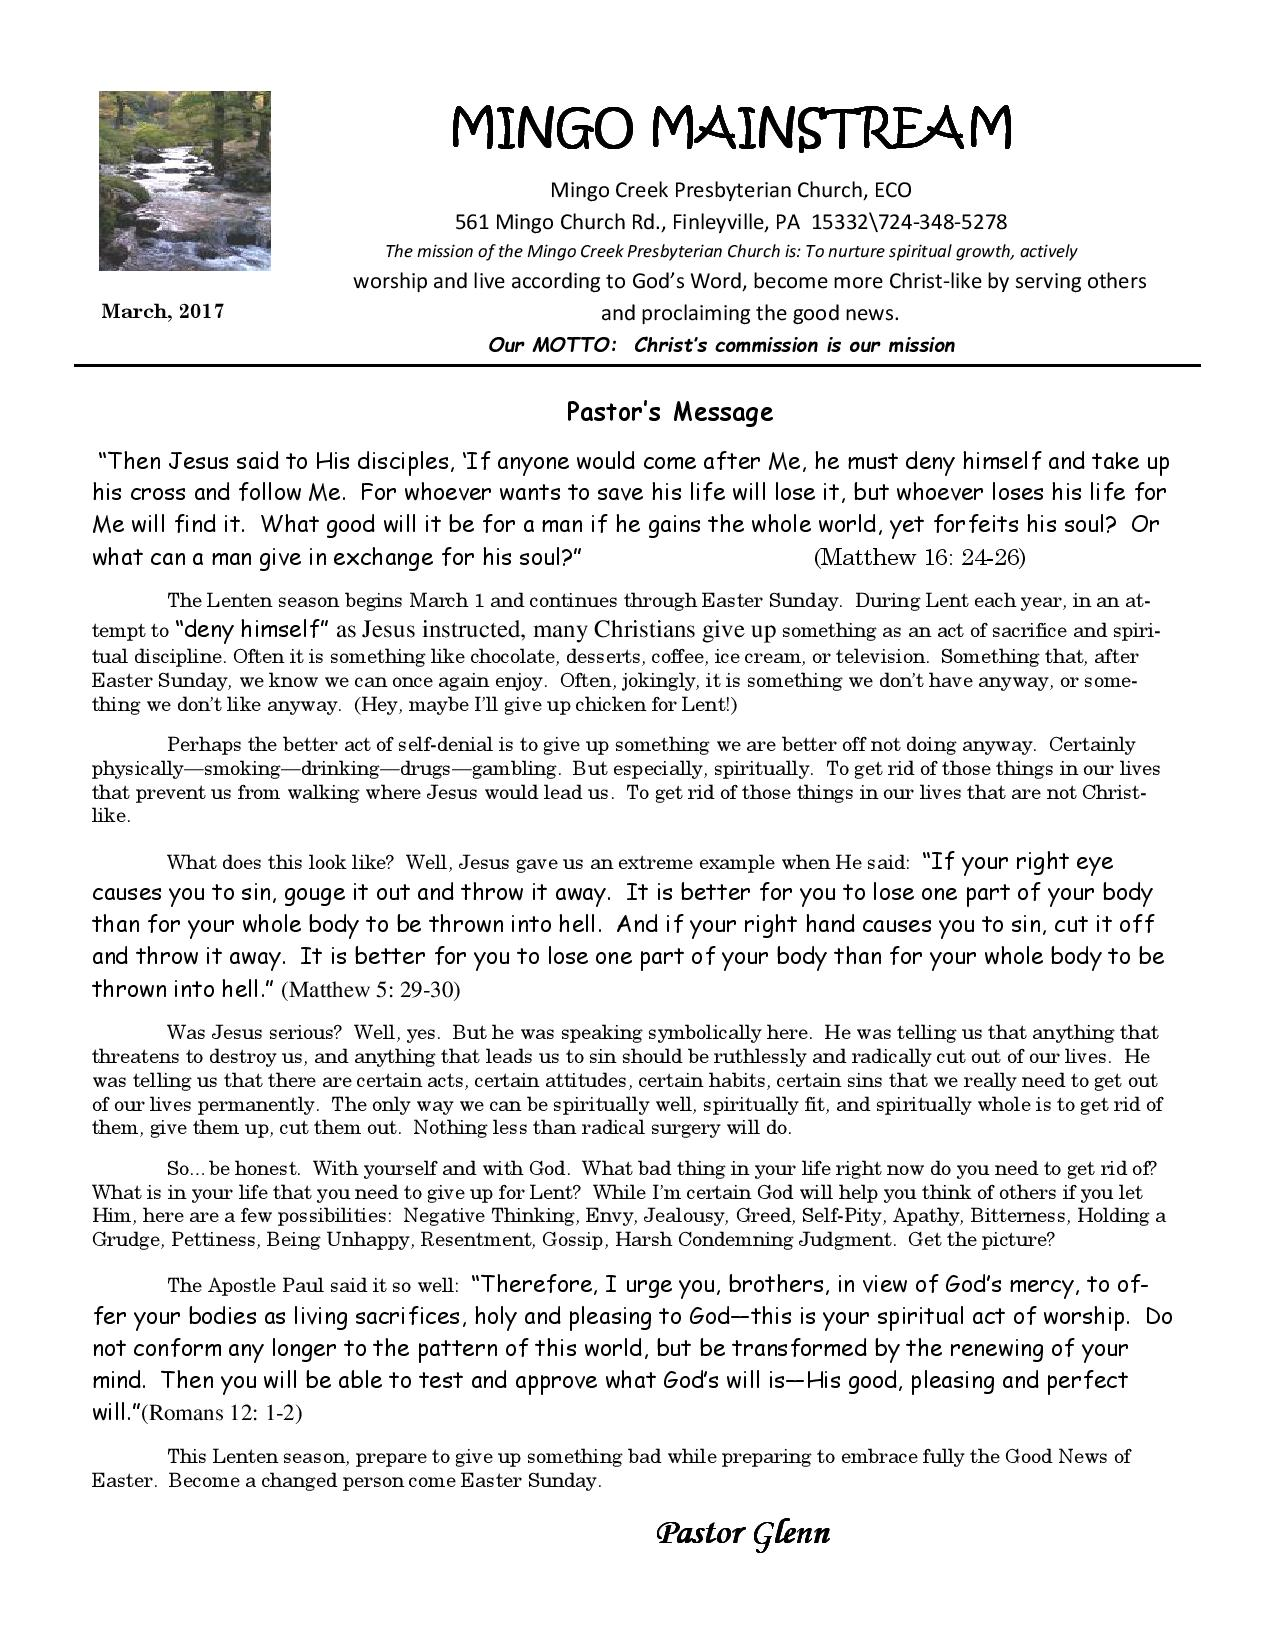 MARCH NEWSLETTER (1)-page-001.jpg